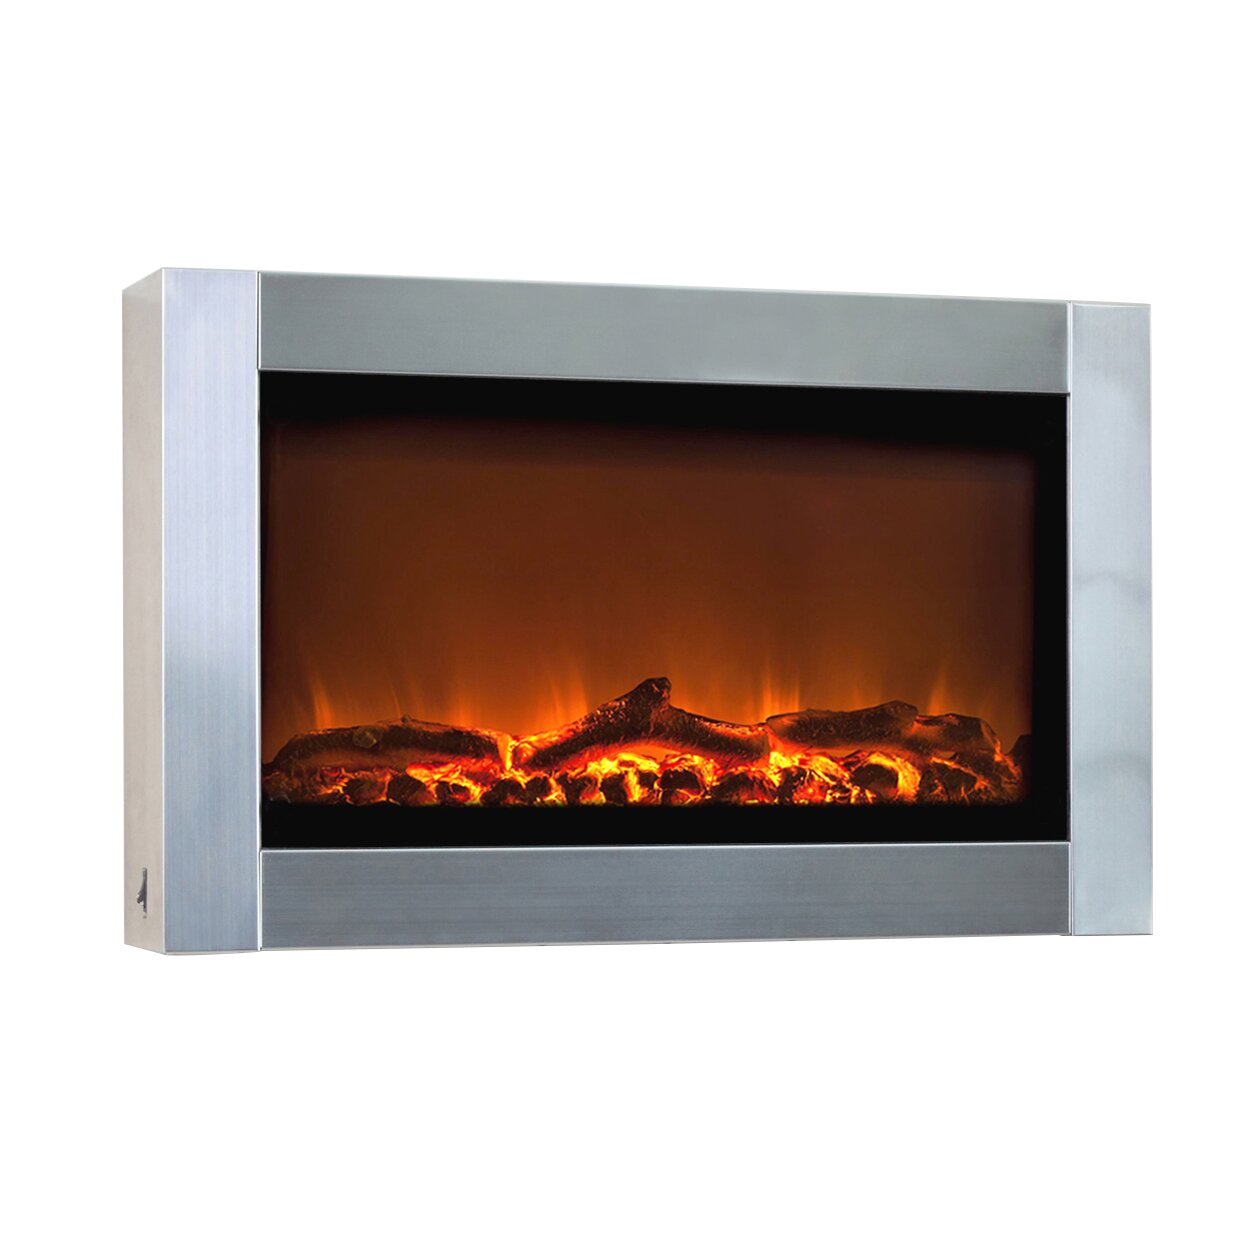 Fire Sense Wall Mounted Electric Fireplace & Reviews